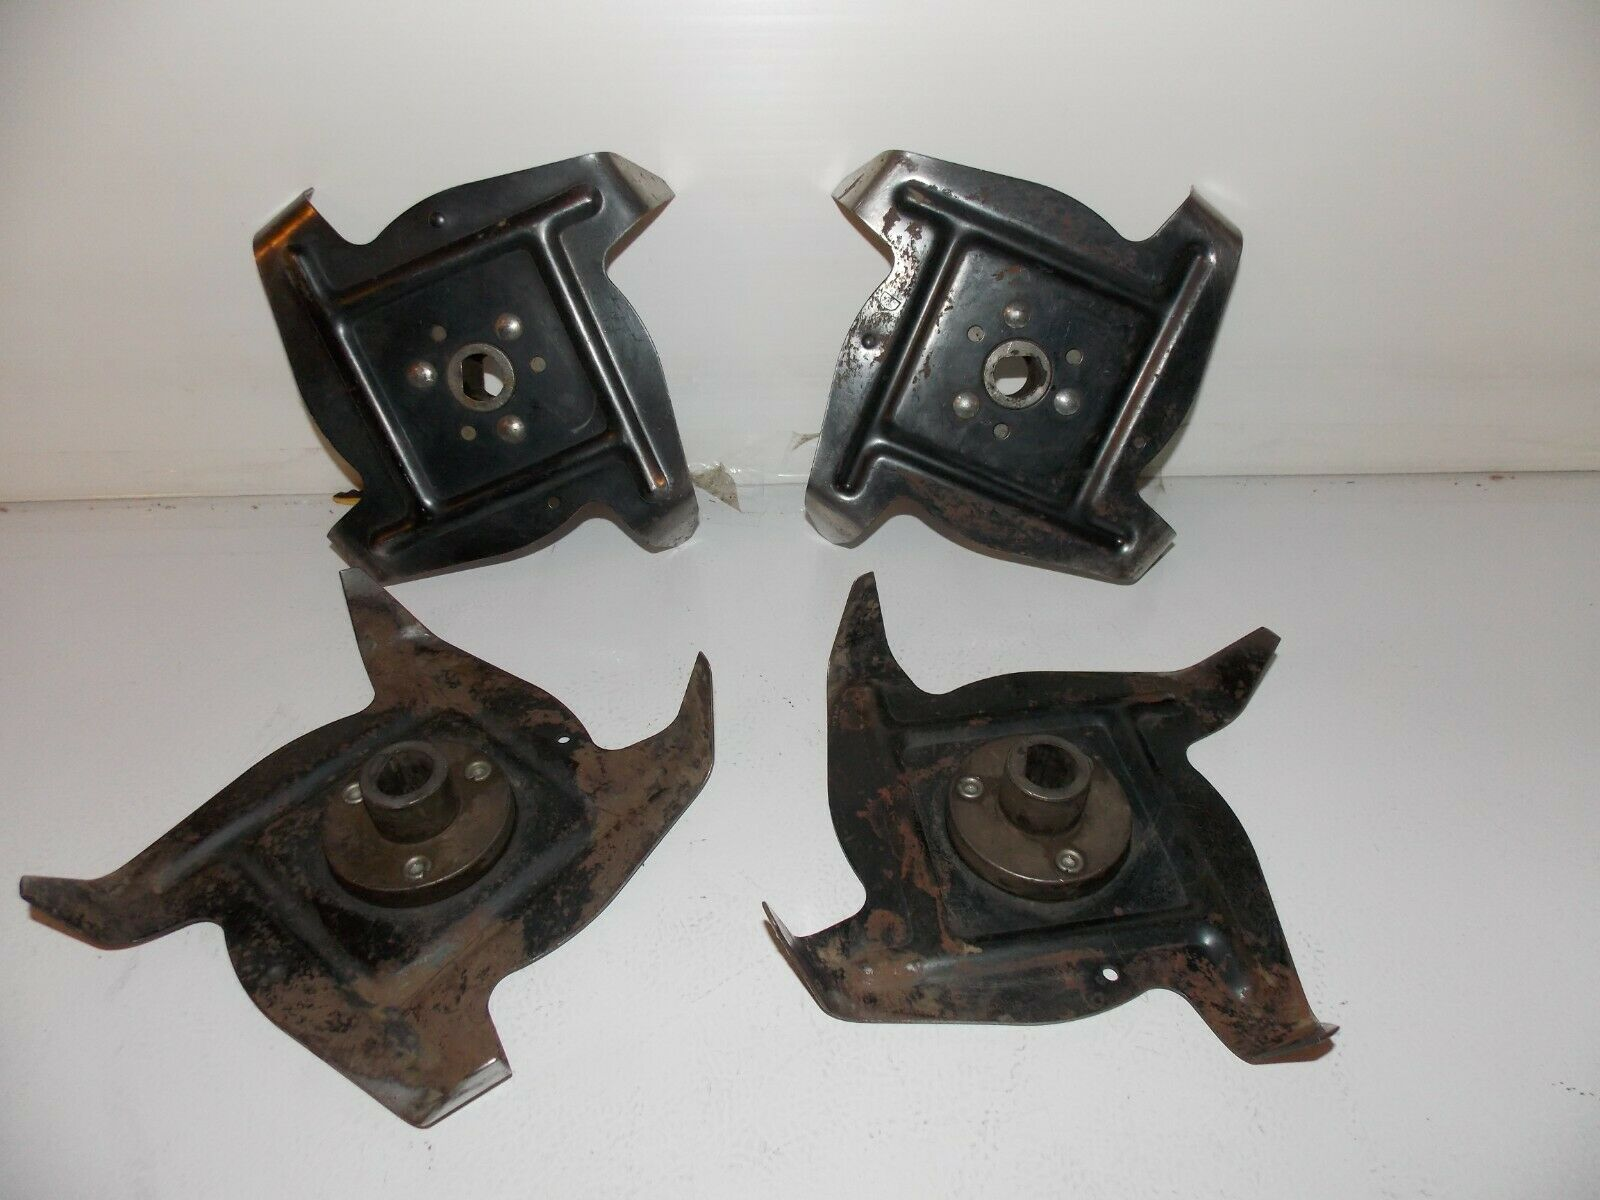 Used lot of 4 Garden Tiller 4 tine Blades (2) A and (2) D parts gas electric